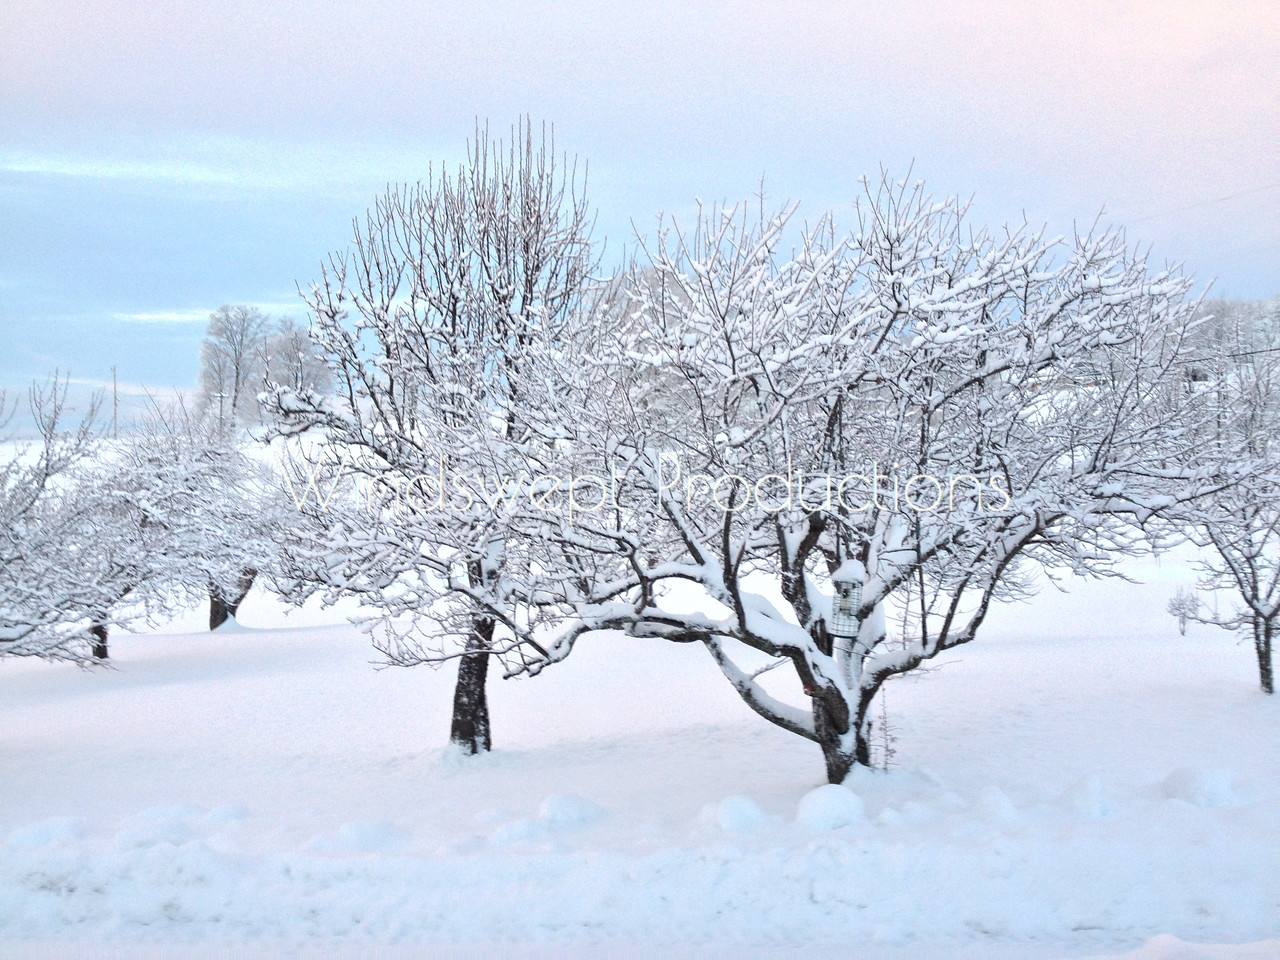 Winter Orchard in White, Grey, and Blue